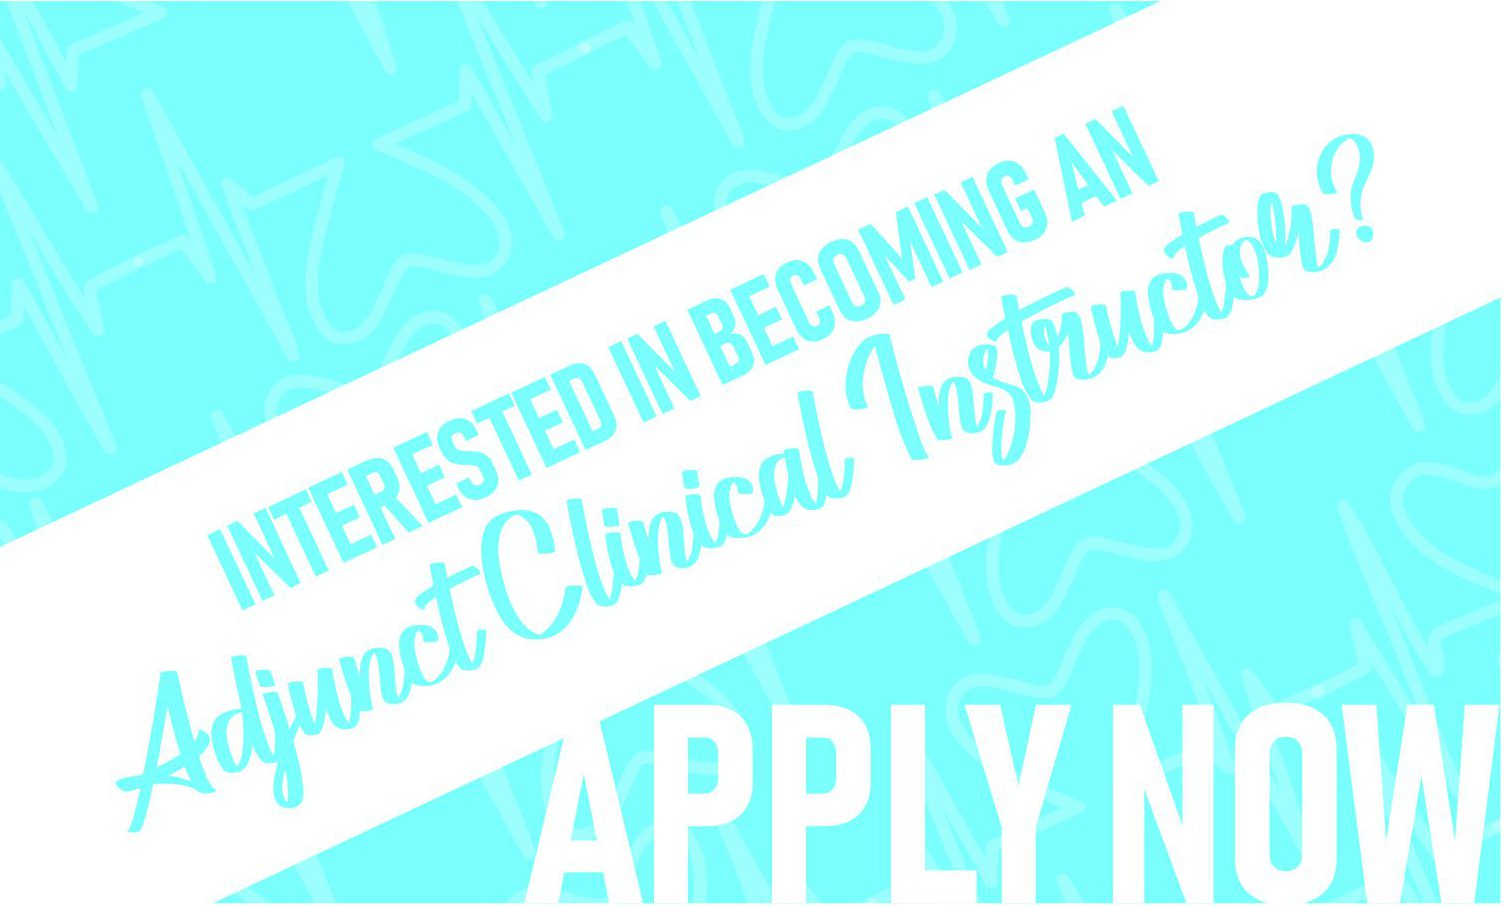 Bachelor of Science in Nursing (BSN) Program